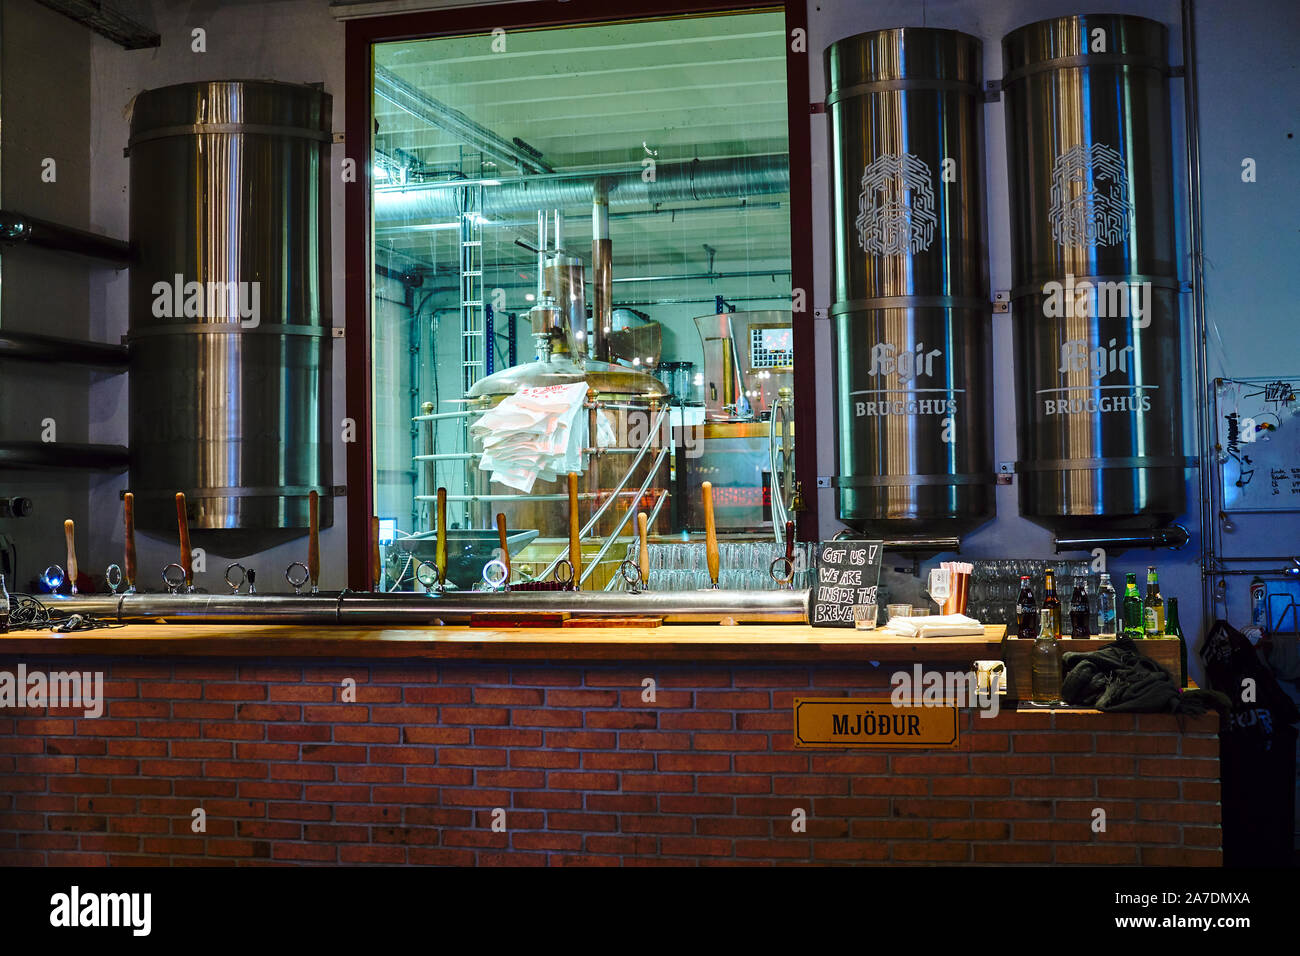 Ægisgarður, craft beer factory in Reykjavik, Icleand Stock Photo